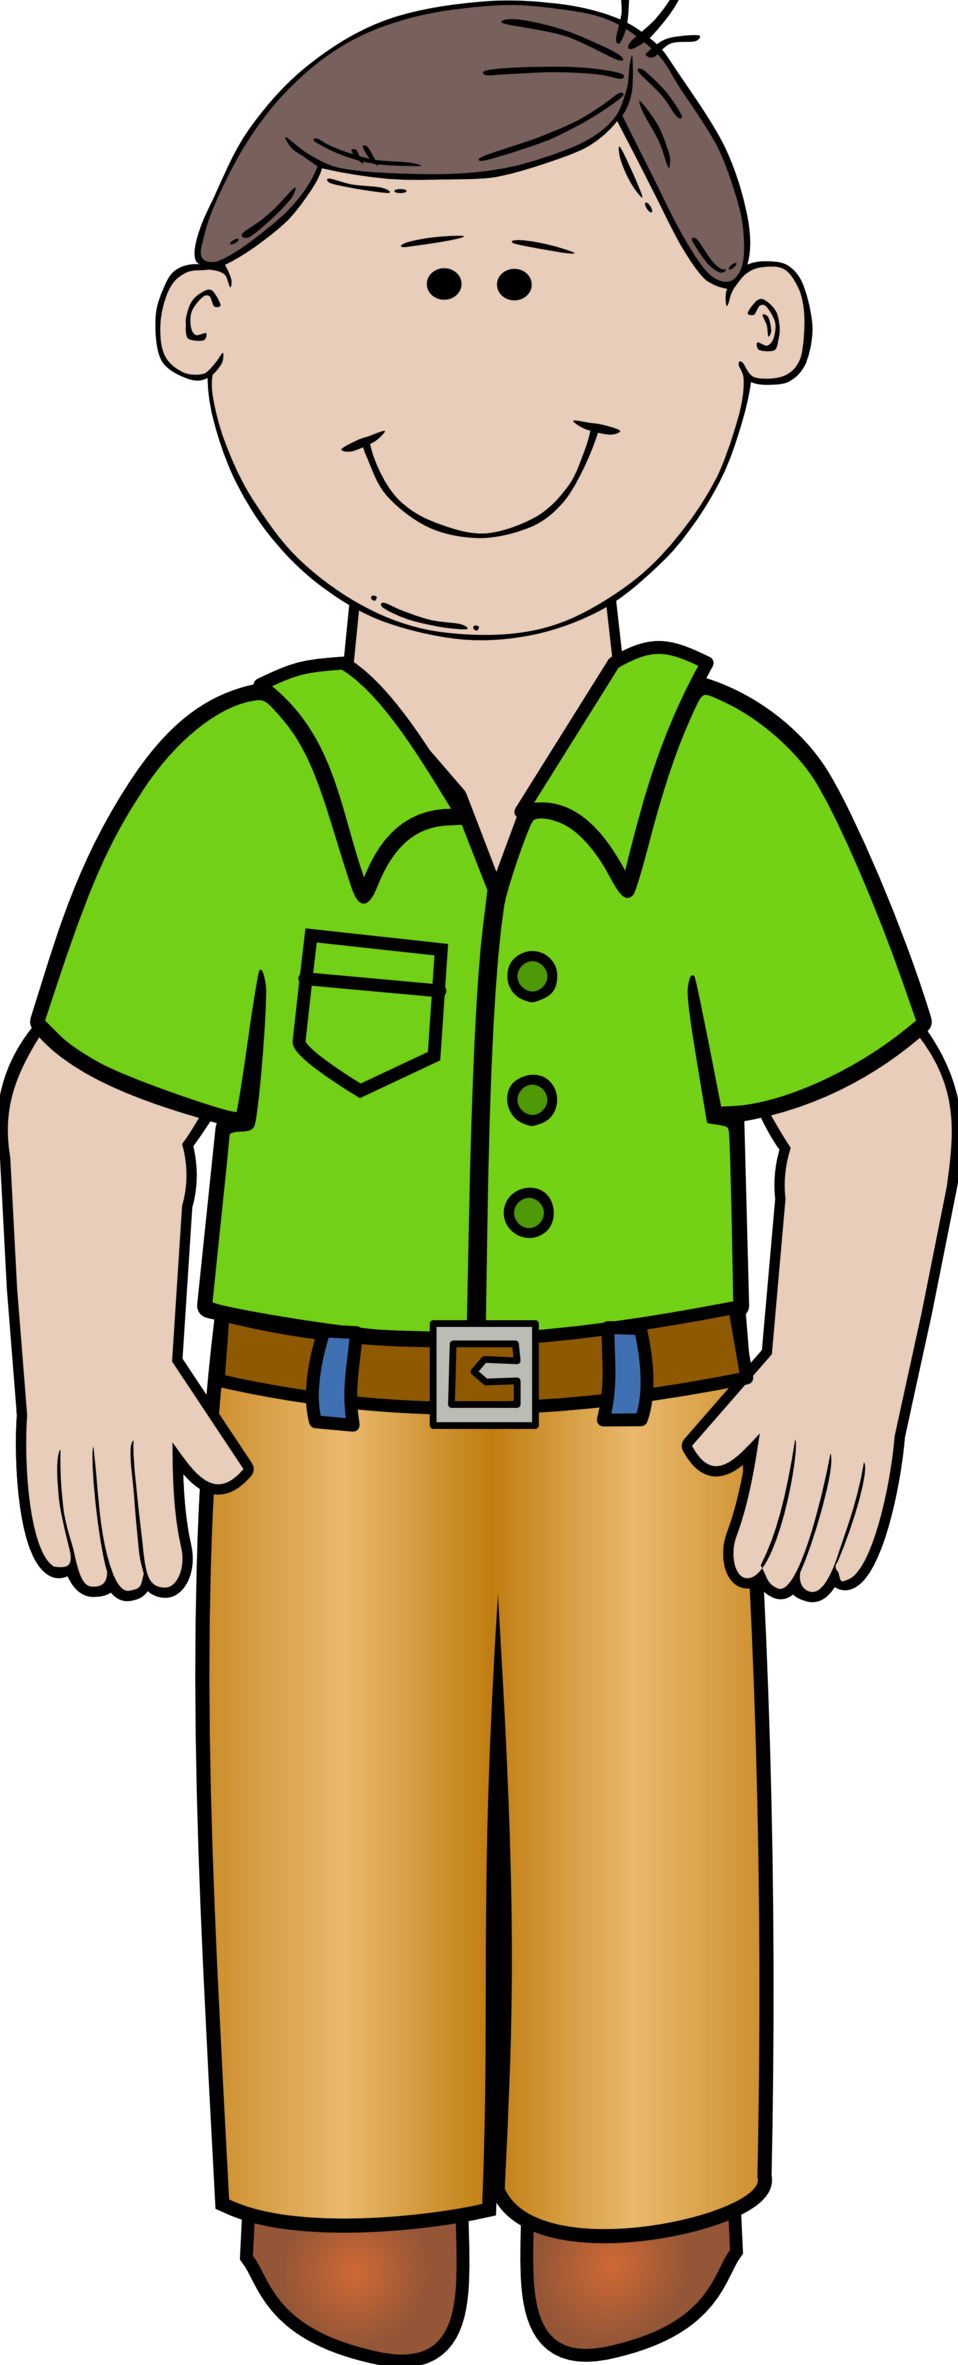 Public domain clip art. Working clipart working dad